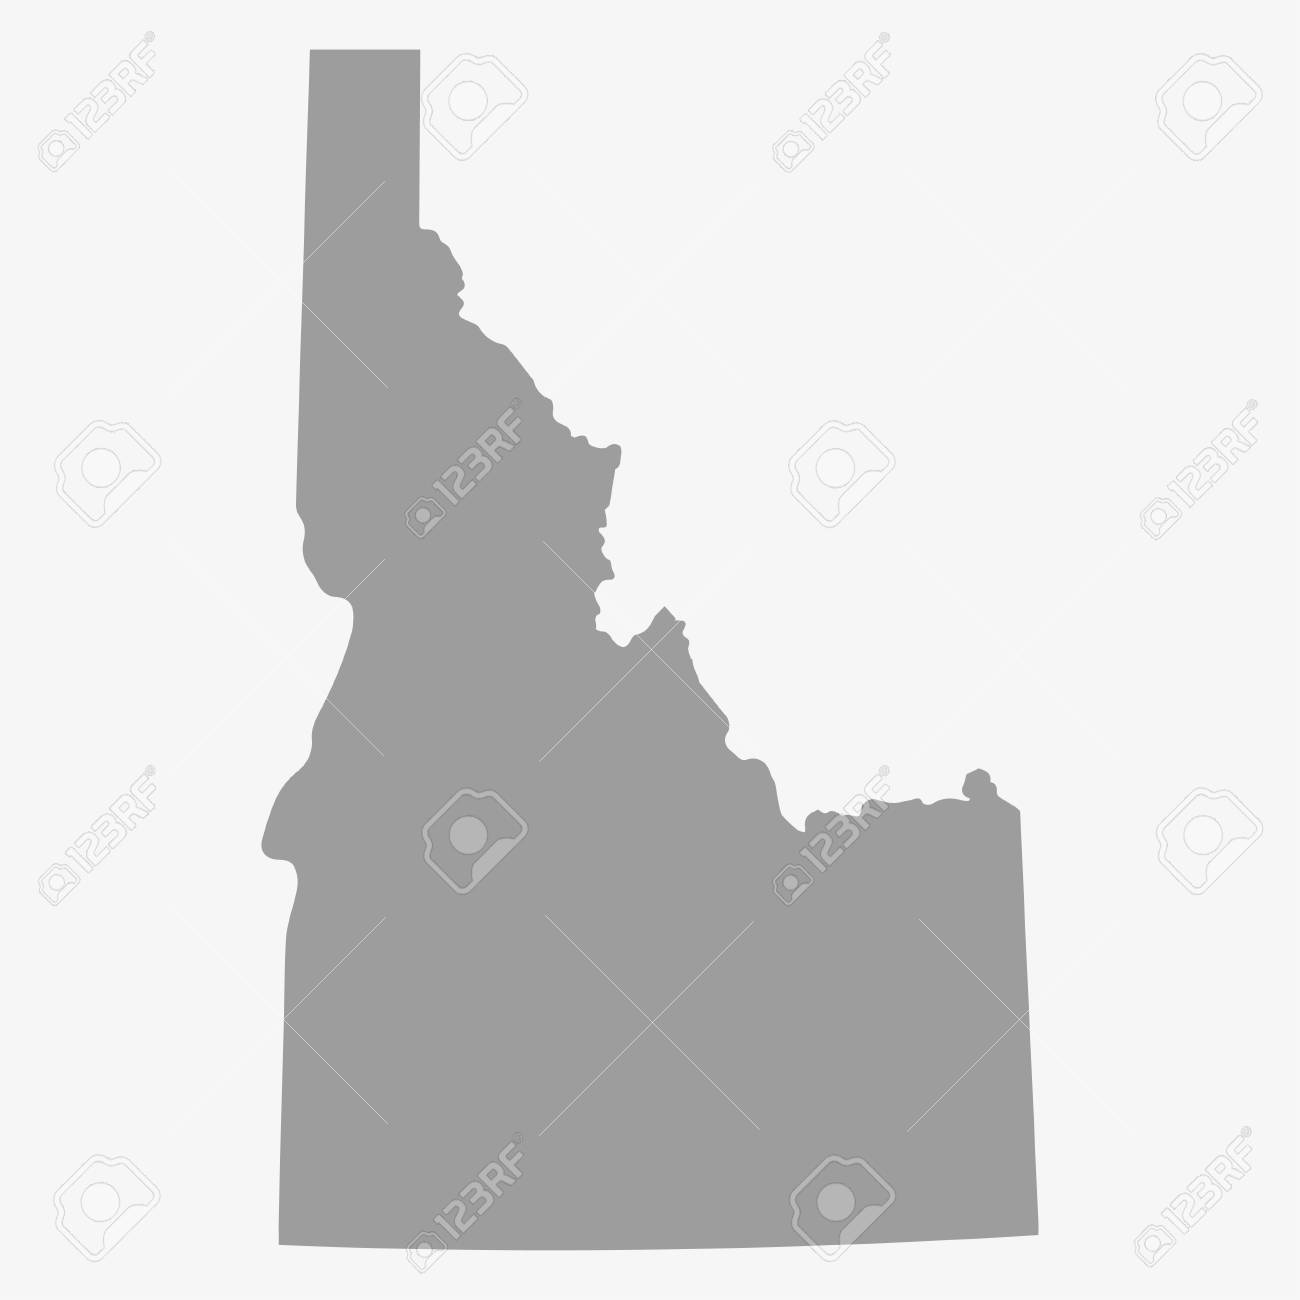 Map Idaho State In Gray On A White Background Royalty Free Cliparts